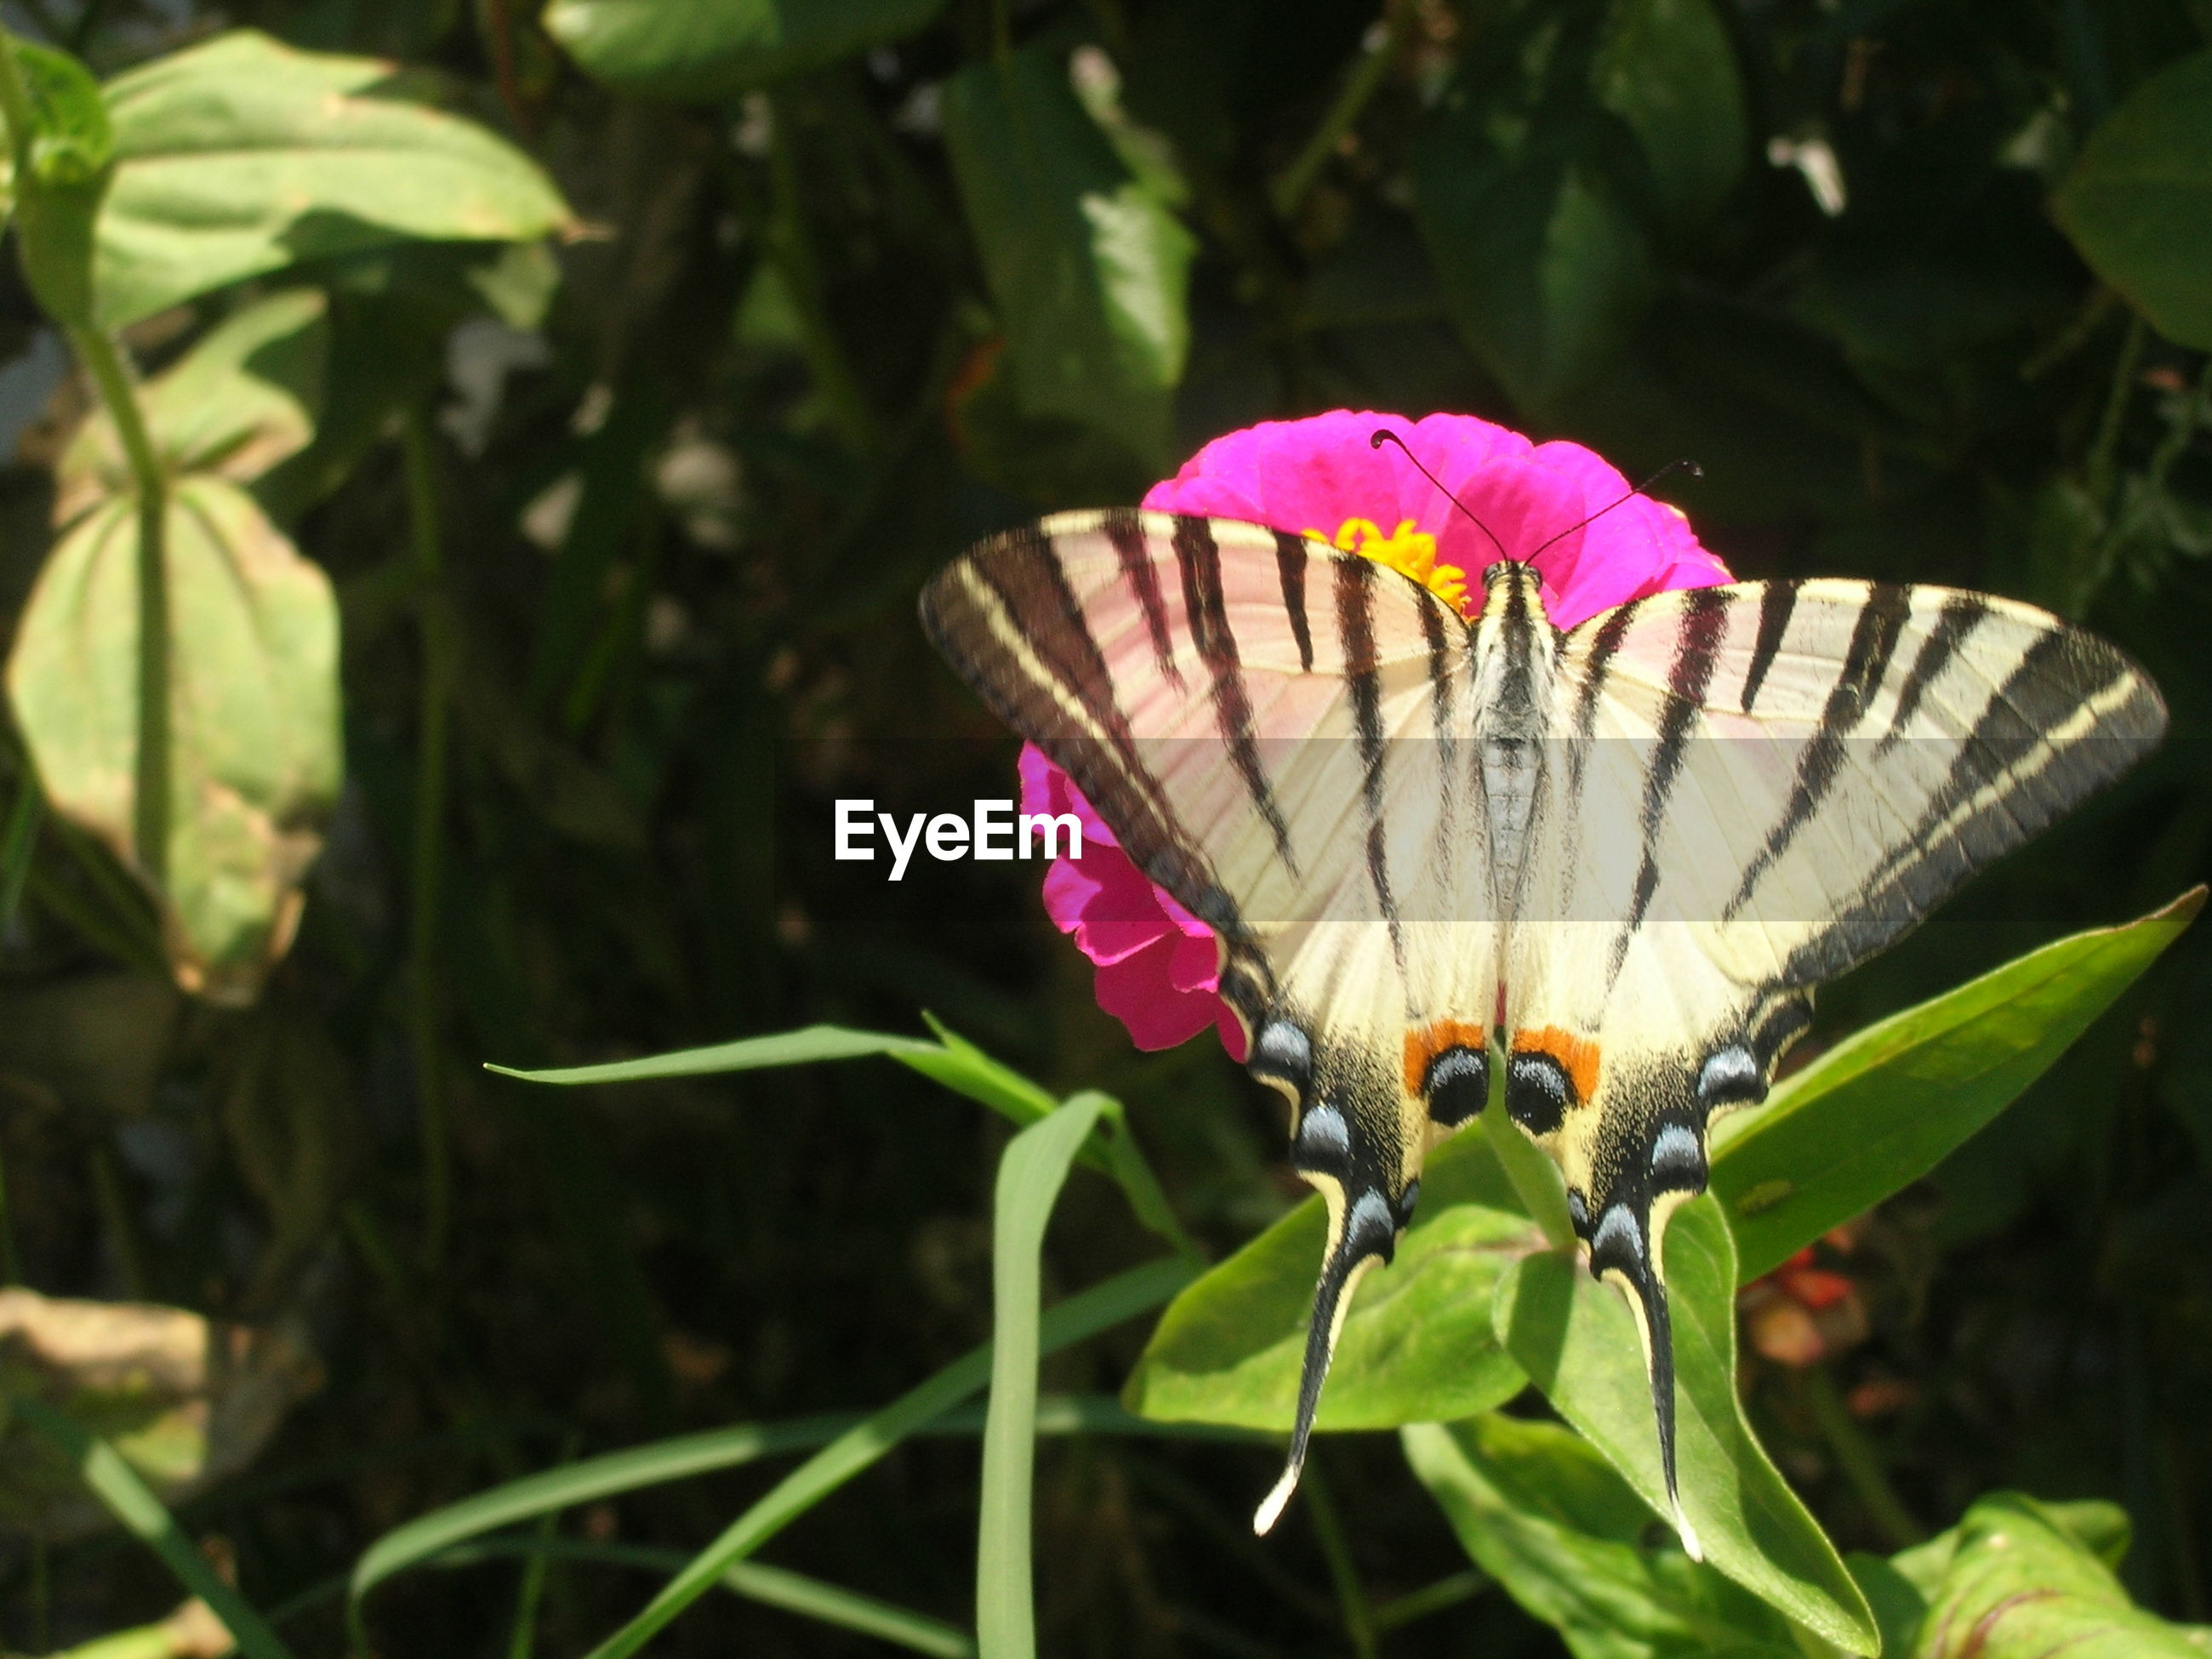 flower, one animal, animals in the wild, insect, wildlife, animal themes, fragility, leaf, growth, focus on foreground, pink color, close-up, nature, beauty in nature, plant, butterfly - insect, freshness, butterfly, petal, green color